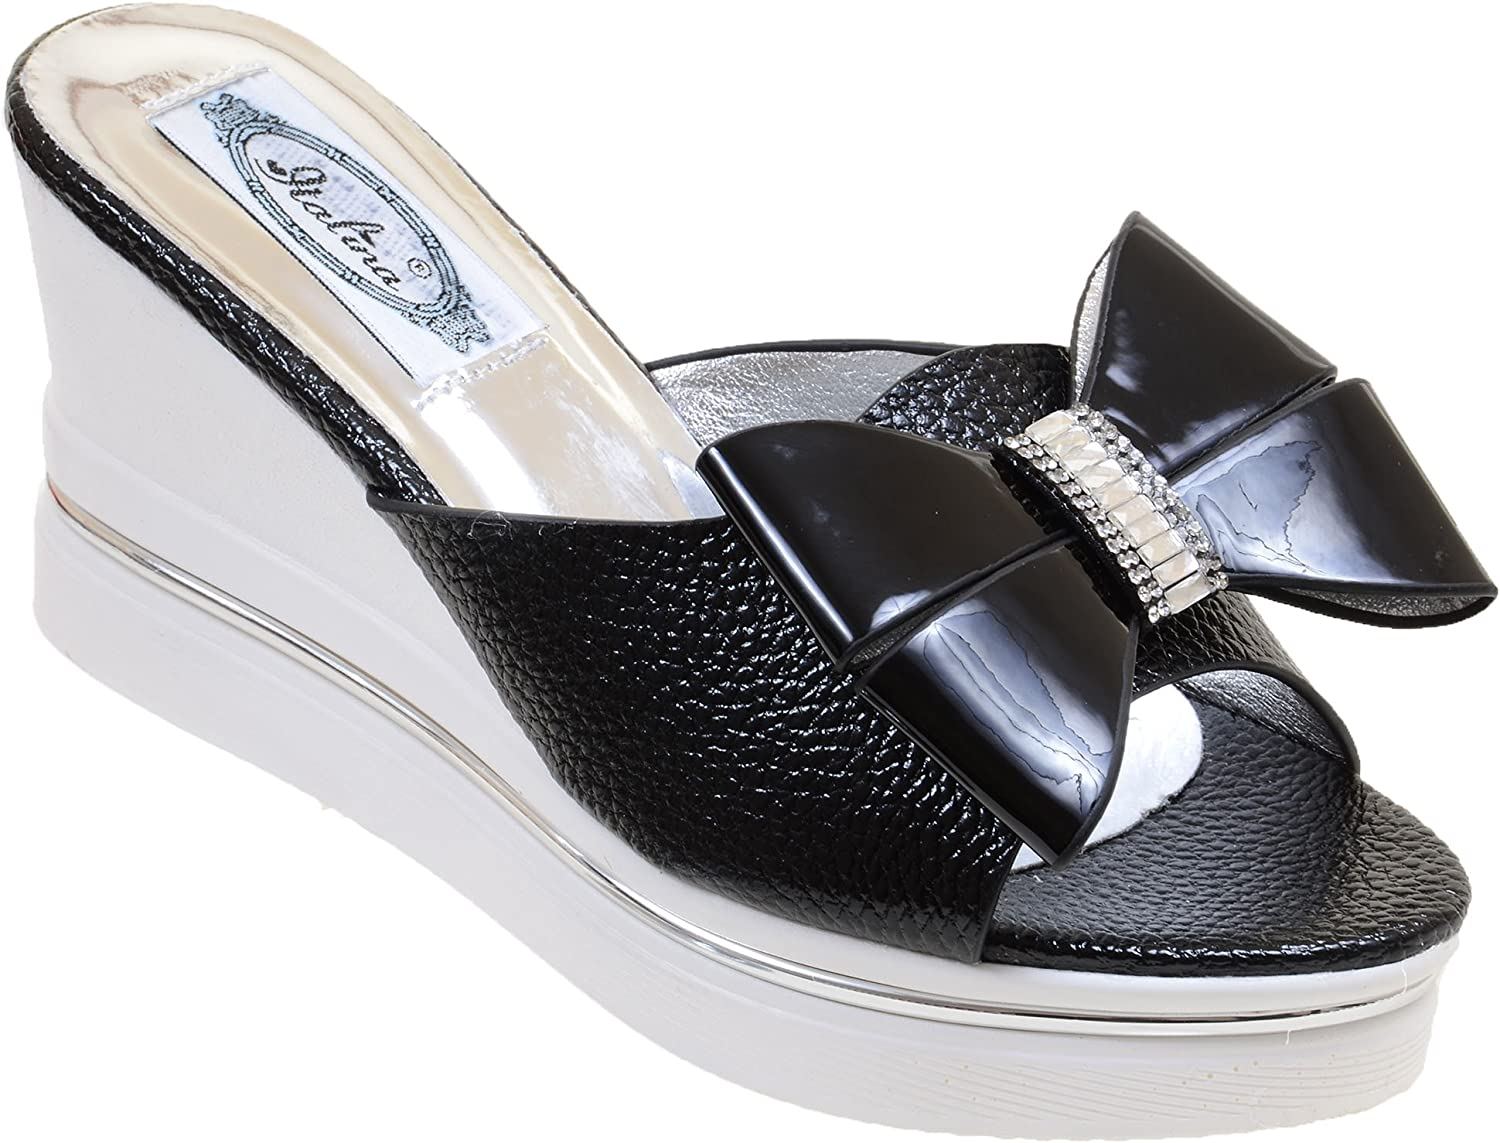 Bows Bling Open-Toe Slide shoes Black Patent Wedge Heels Women's